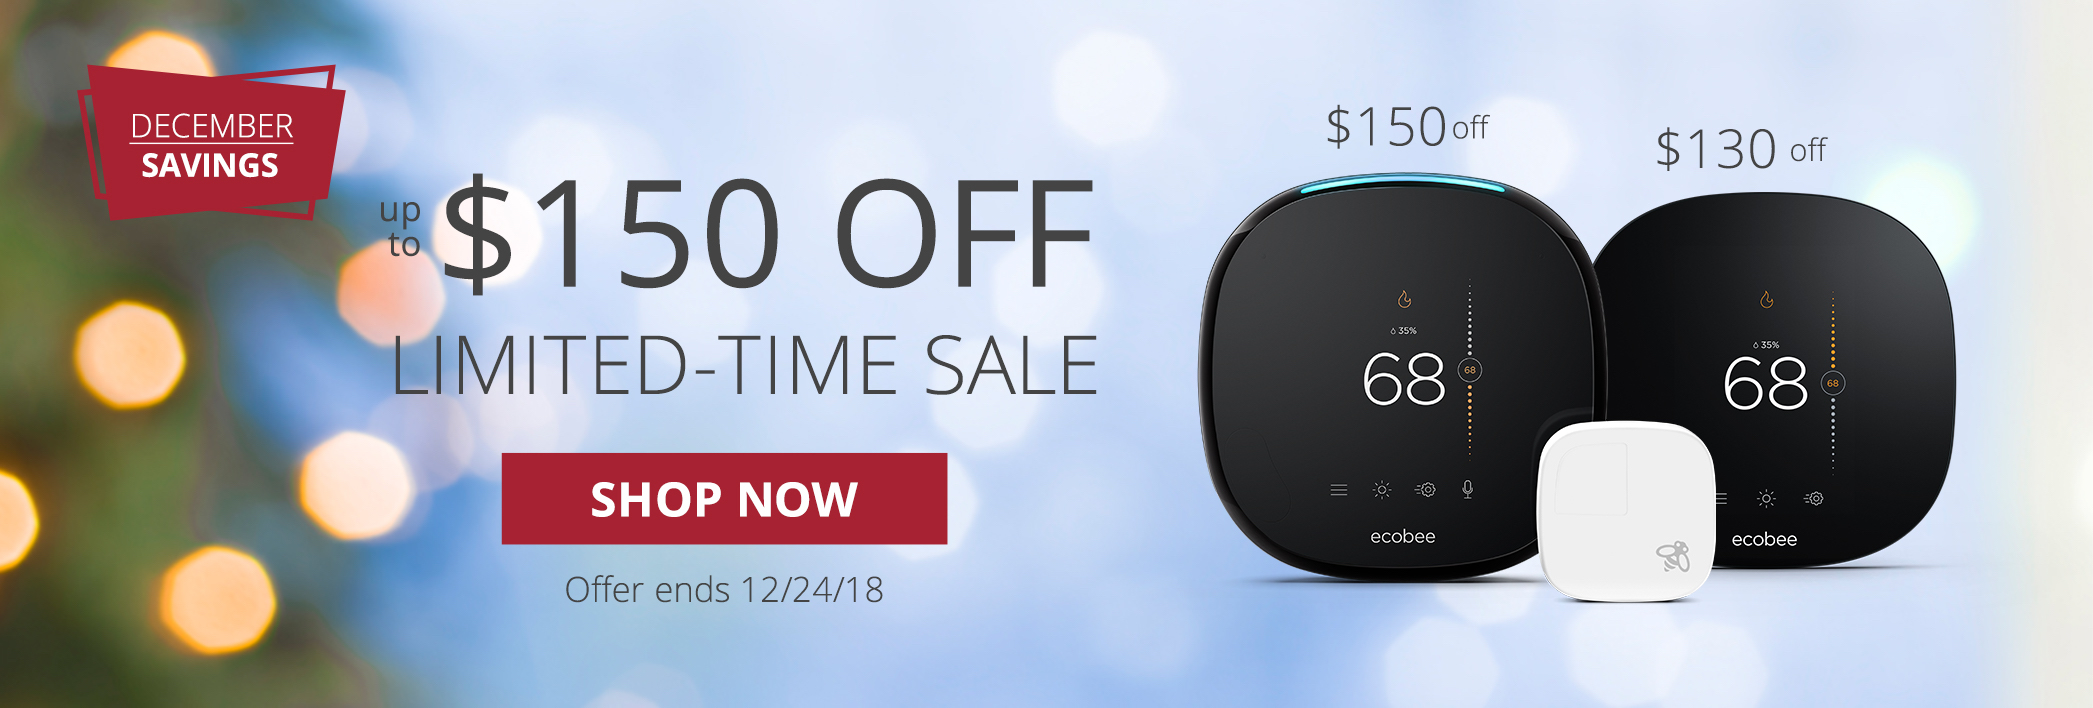 December Savings - Limited Time Sale - ecobee